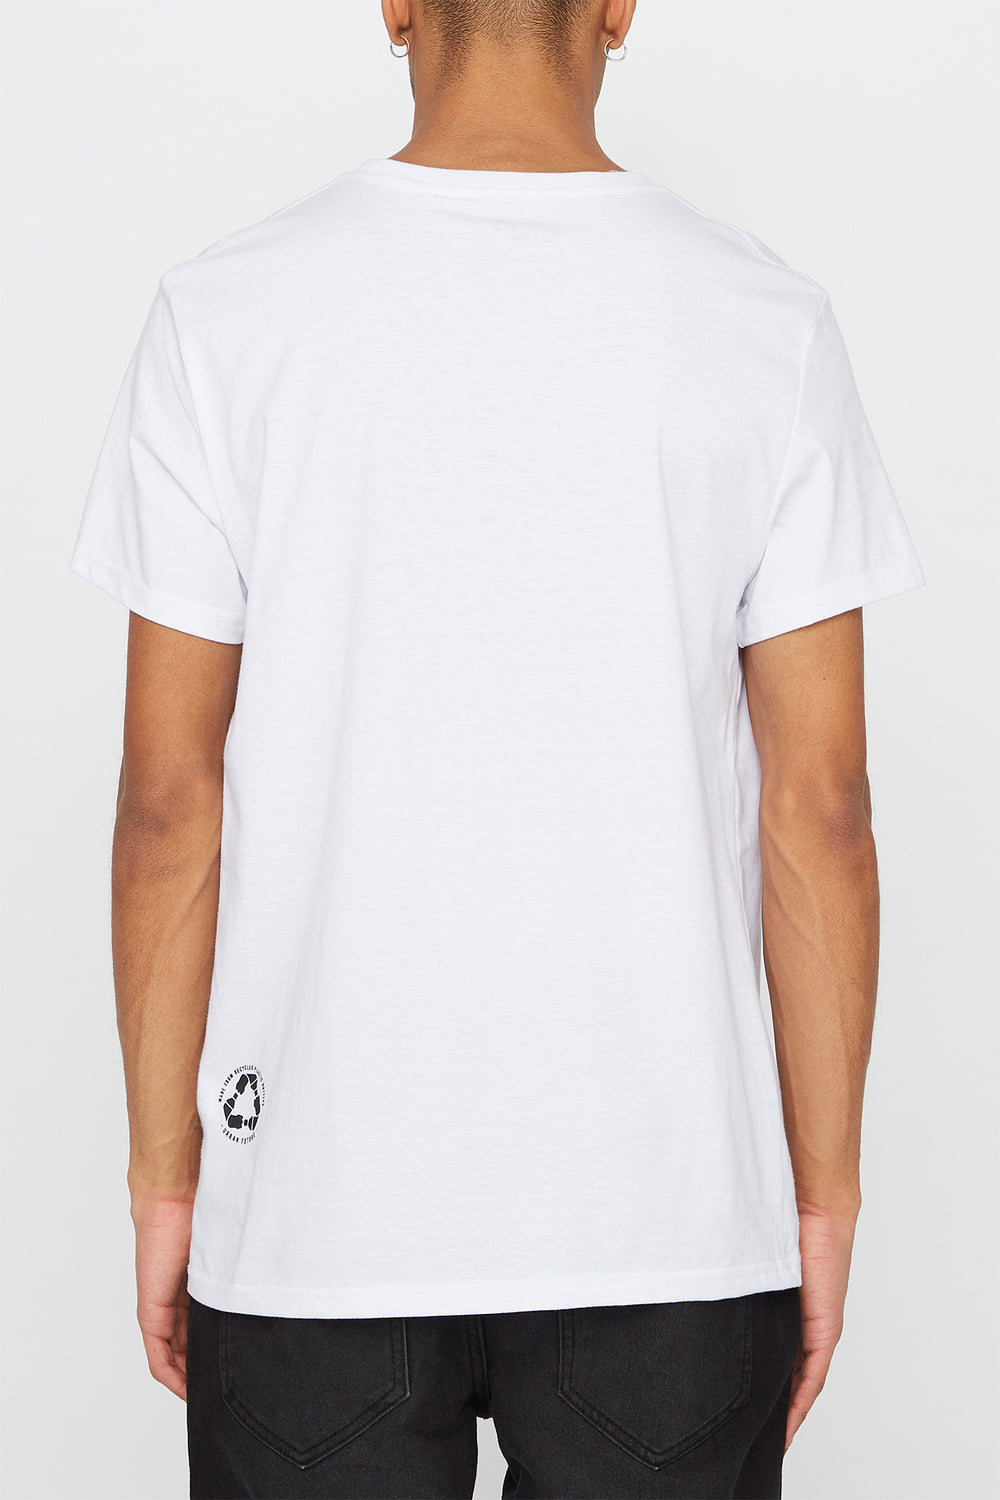 REPREVE® Mens Eco-Friendly T-Shirt White